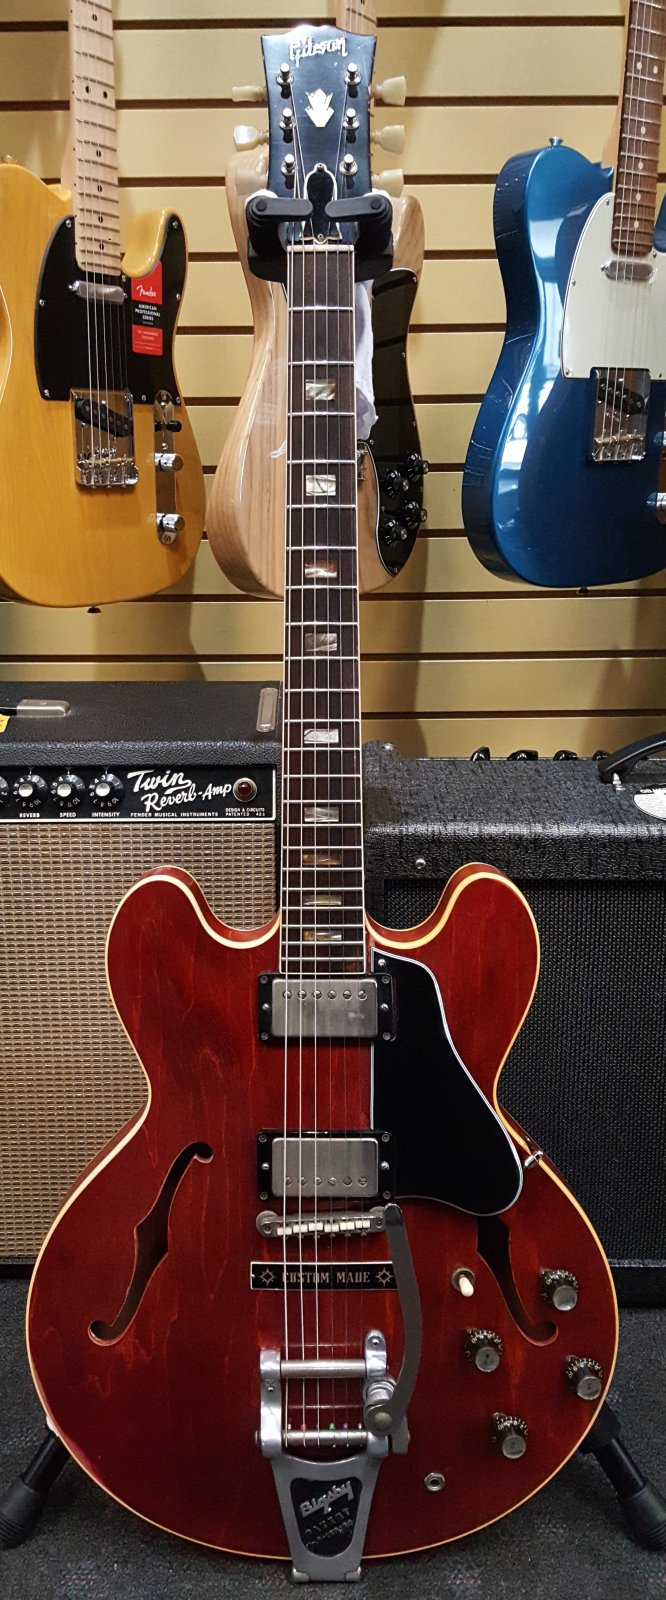 Gibson 1962 ES-335 with Factory Bigsby, Original PAF Pickup and Original Hardshell Case